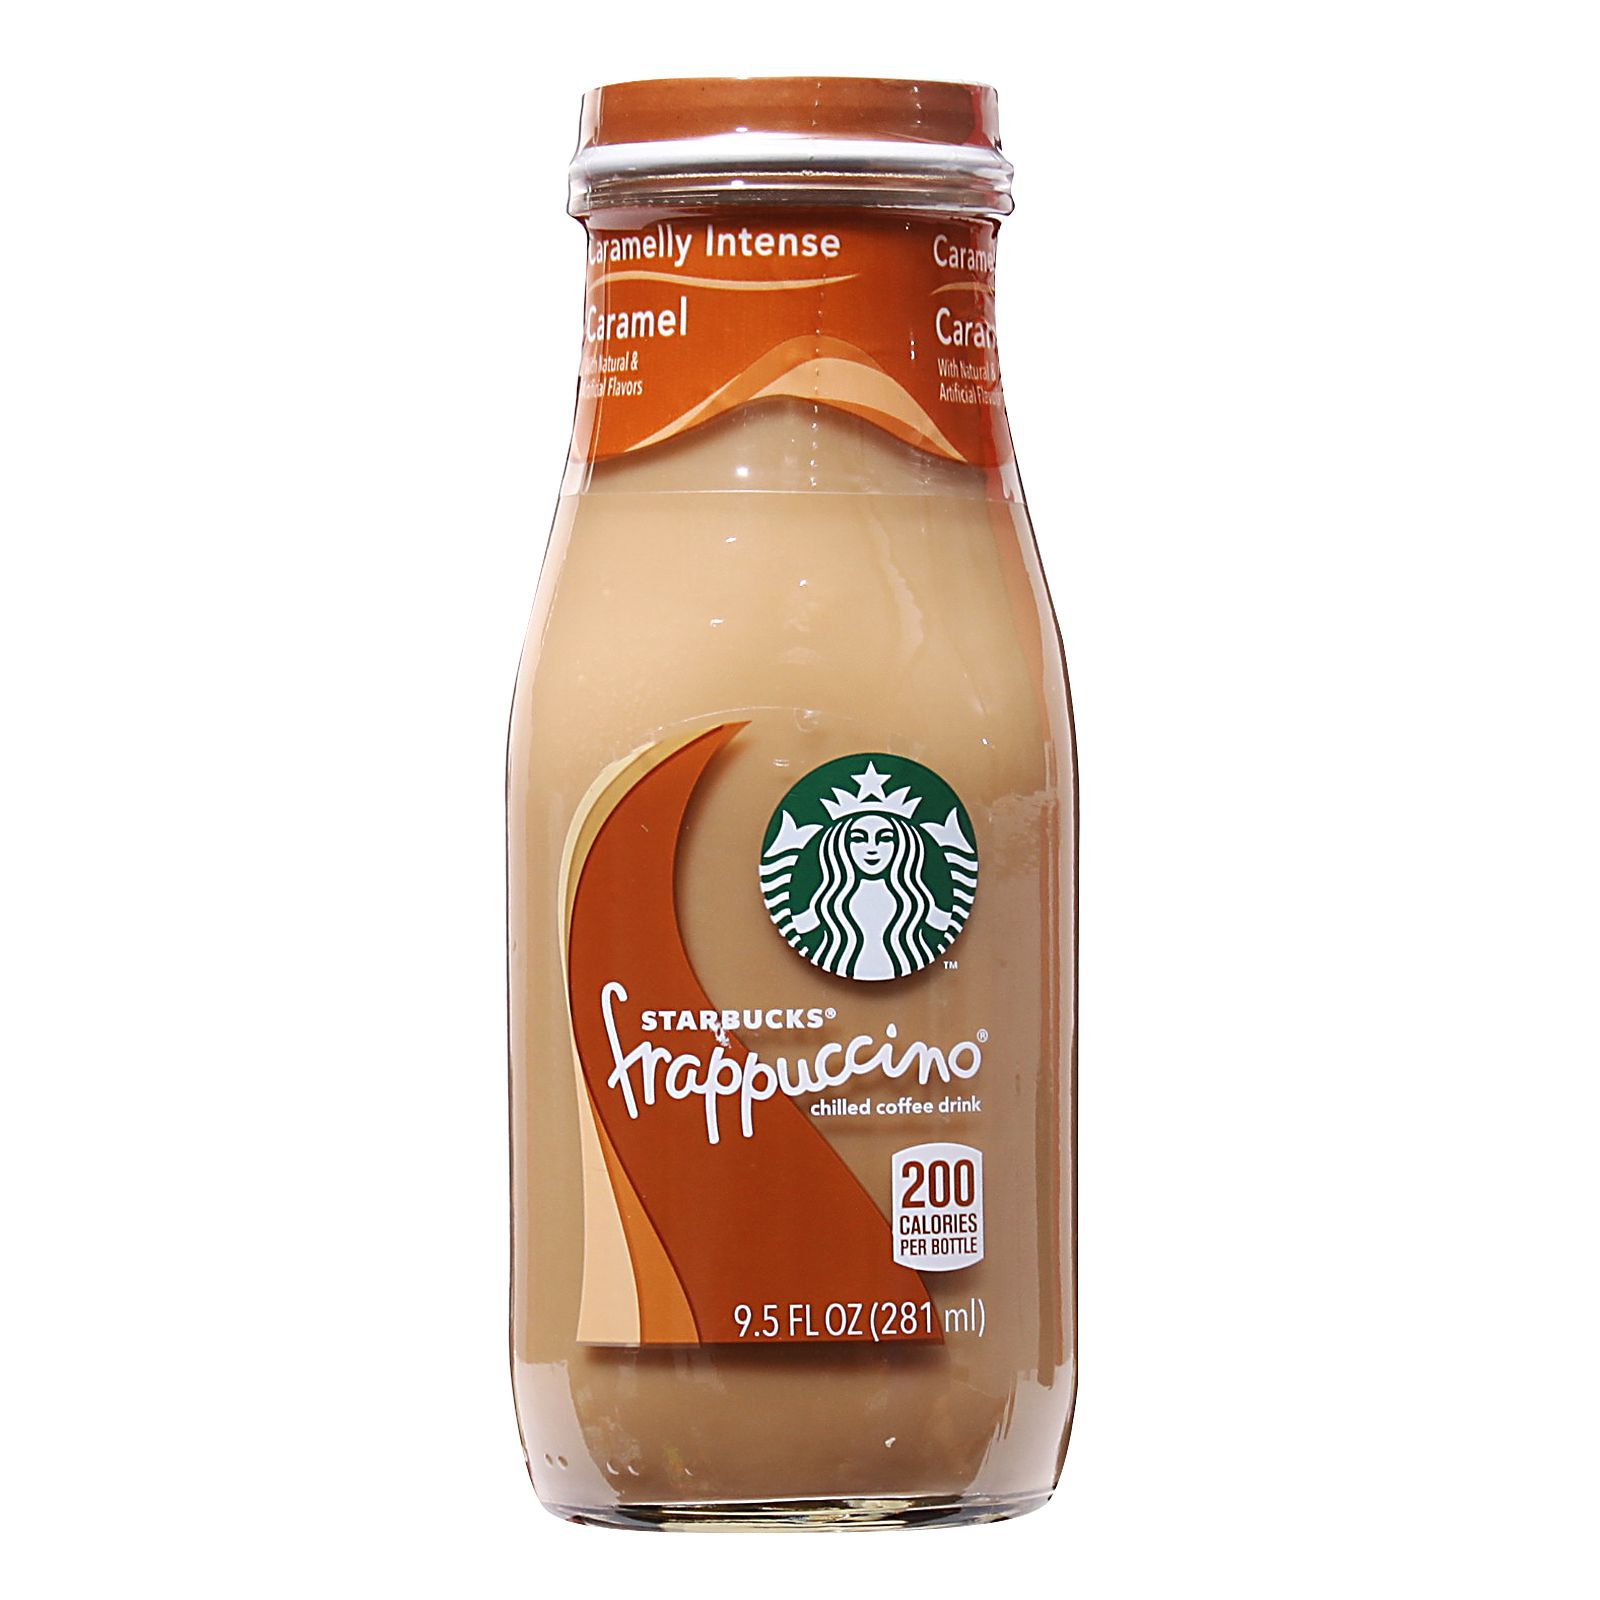 Starbucks Frappuccino Caramel Chilled Coffee Drink